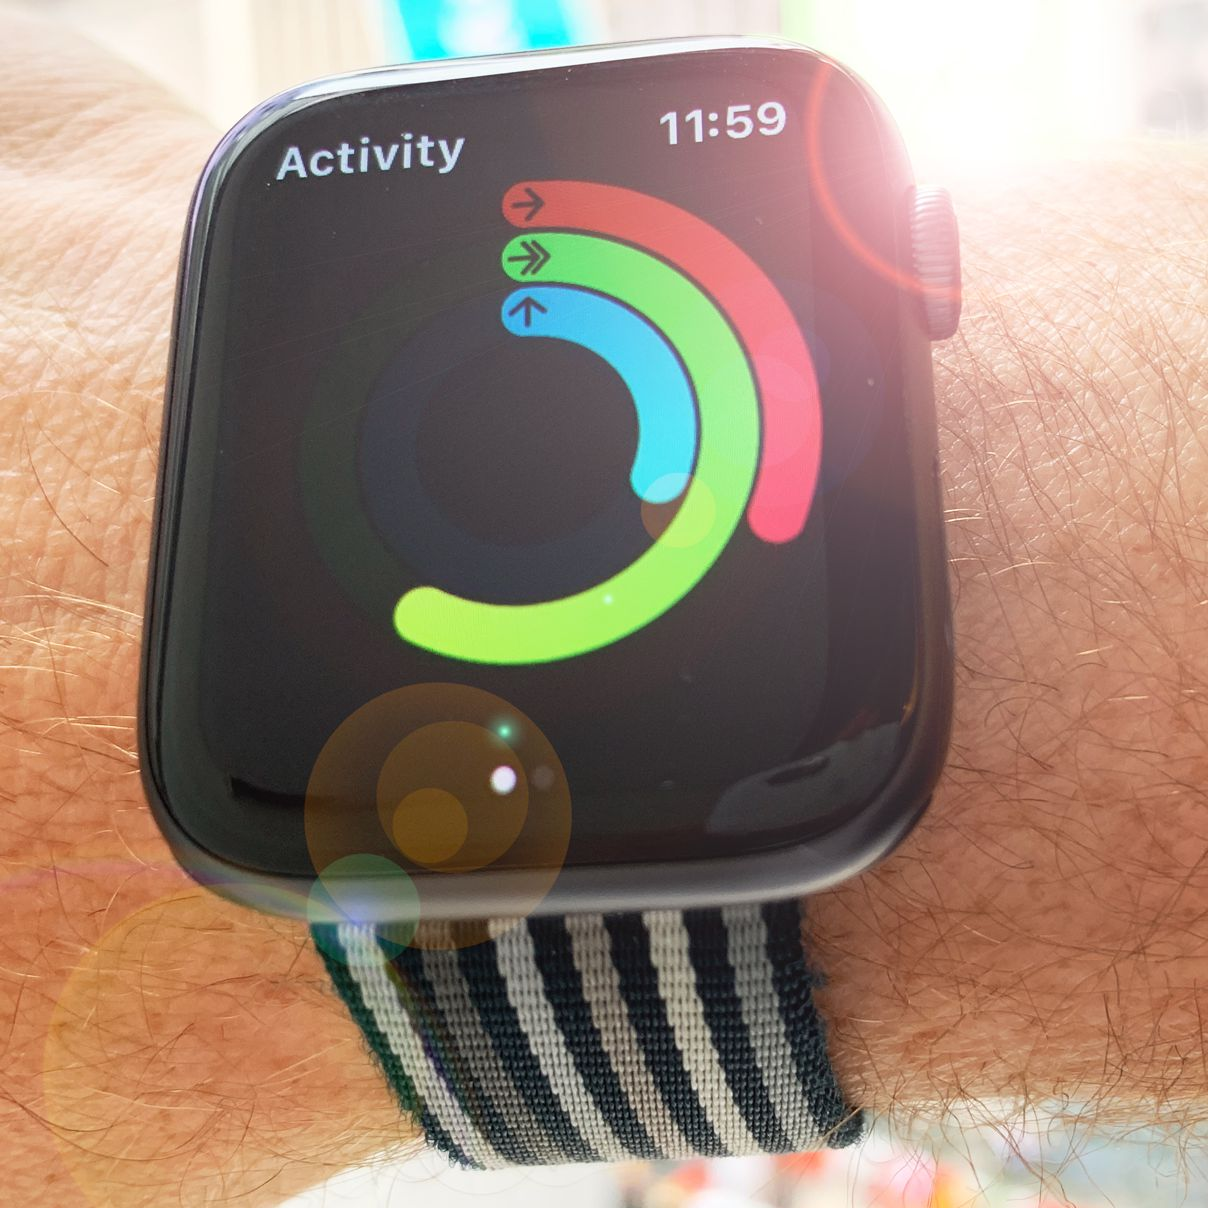 Apple Watch is a Health Device, Full Stop